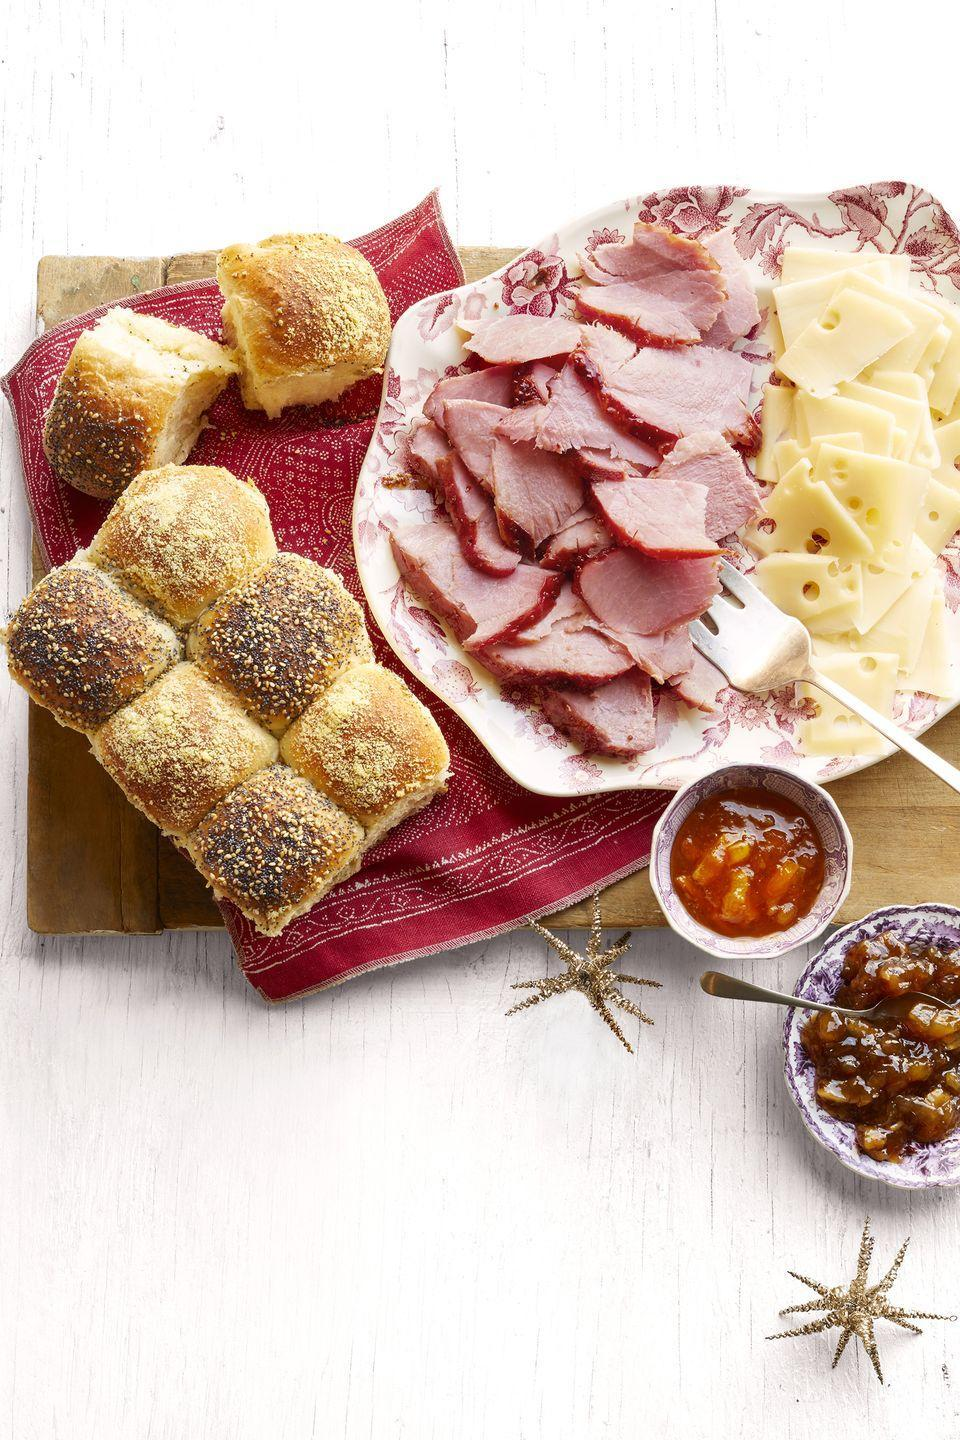 """<p>Even if you're just having apps, you can still serve a holiday ham! Carve it, and guests can make their own sliders.</p><p><strong><a href=""""https://www.thepioneerwoman.com/food-cooking/recipes/a34271871/honey-glazed-ham-and-checkerboard-rolls-recipe/"""" rel=""""nofollow noopener"""" target=""""_blank"""" data-ylk=""""slk:Get the recipe."""" class=""""link rapid-noclick-resp"""">Get the recipe.</a></strong></p><p><a class=""""link rapid-noclick-resp"""" href=""""https://go.redirectingat.com?id=74968X1596630&url=https%3A%2F%2Fwww.walmart.com%2Fbrowse%2Fhome%2Fserveware%2Fthe-pioneer-woman%2F4044_623679_639999_2347672%3Ffacet%3Dbrand%253AThe%2BPioneer%2BWoman&sref=https%3A%2F%2Fwww.thepioneerwoman.com%2Ffood-cooking%2Fmeals-menus%2Fg34272733%2Fchristmas-party-appetizers%2F"""" rel=""""nofollow noopener"""" target=""""_blank"""" data-ylk=""""slk:SHOP SERVING PLATTERS"""">SHOP SERVING PLATTERS</a> </p>"""